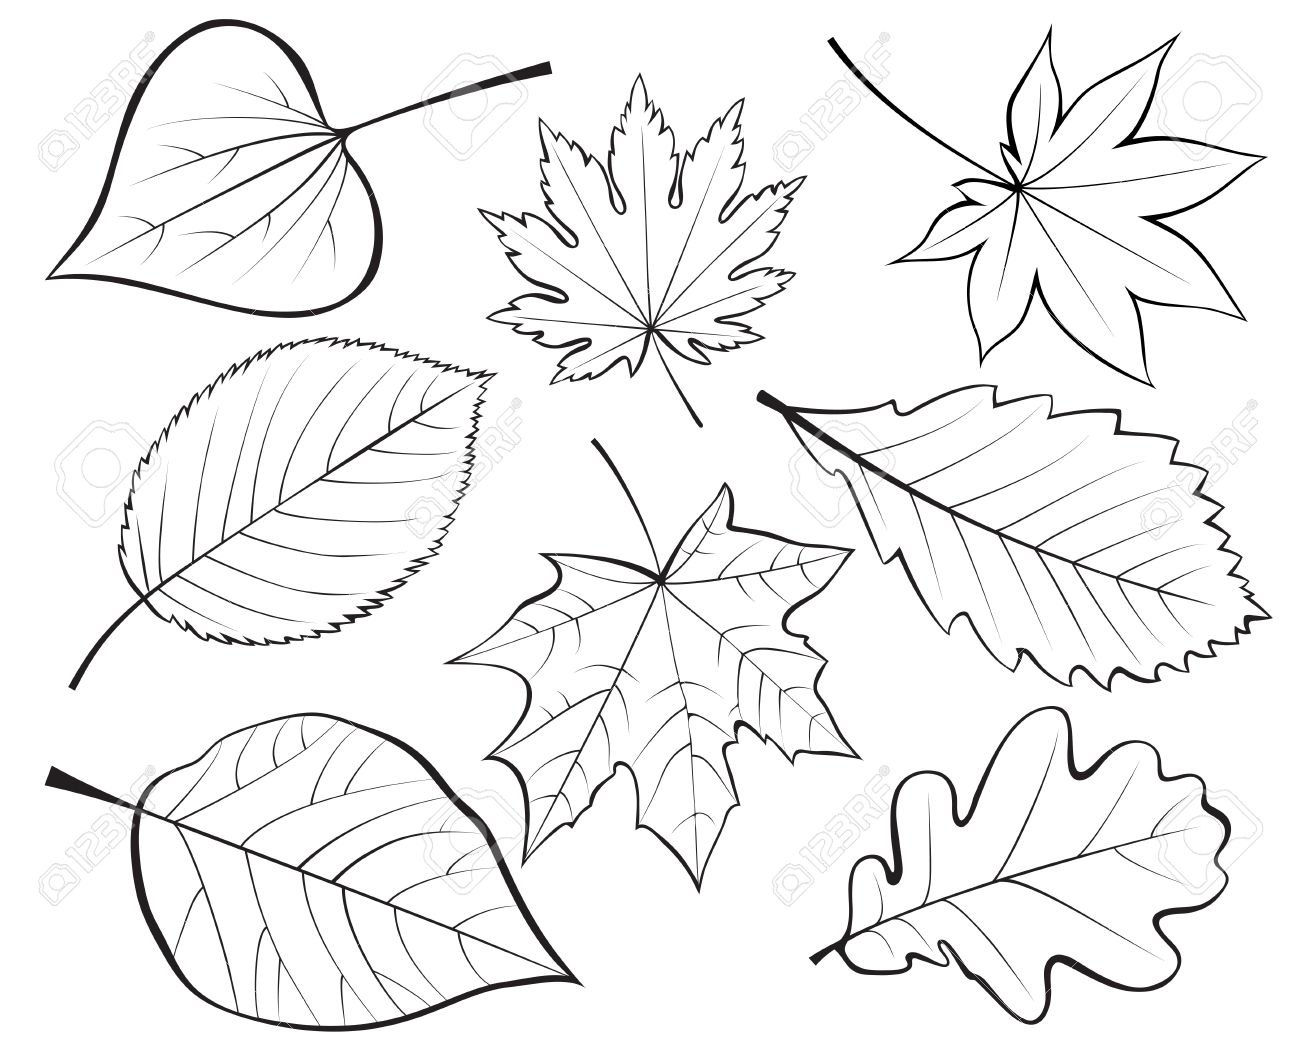 Line Art Leaves : Leaf drawing pictures at getdrawings free for